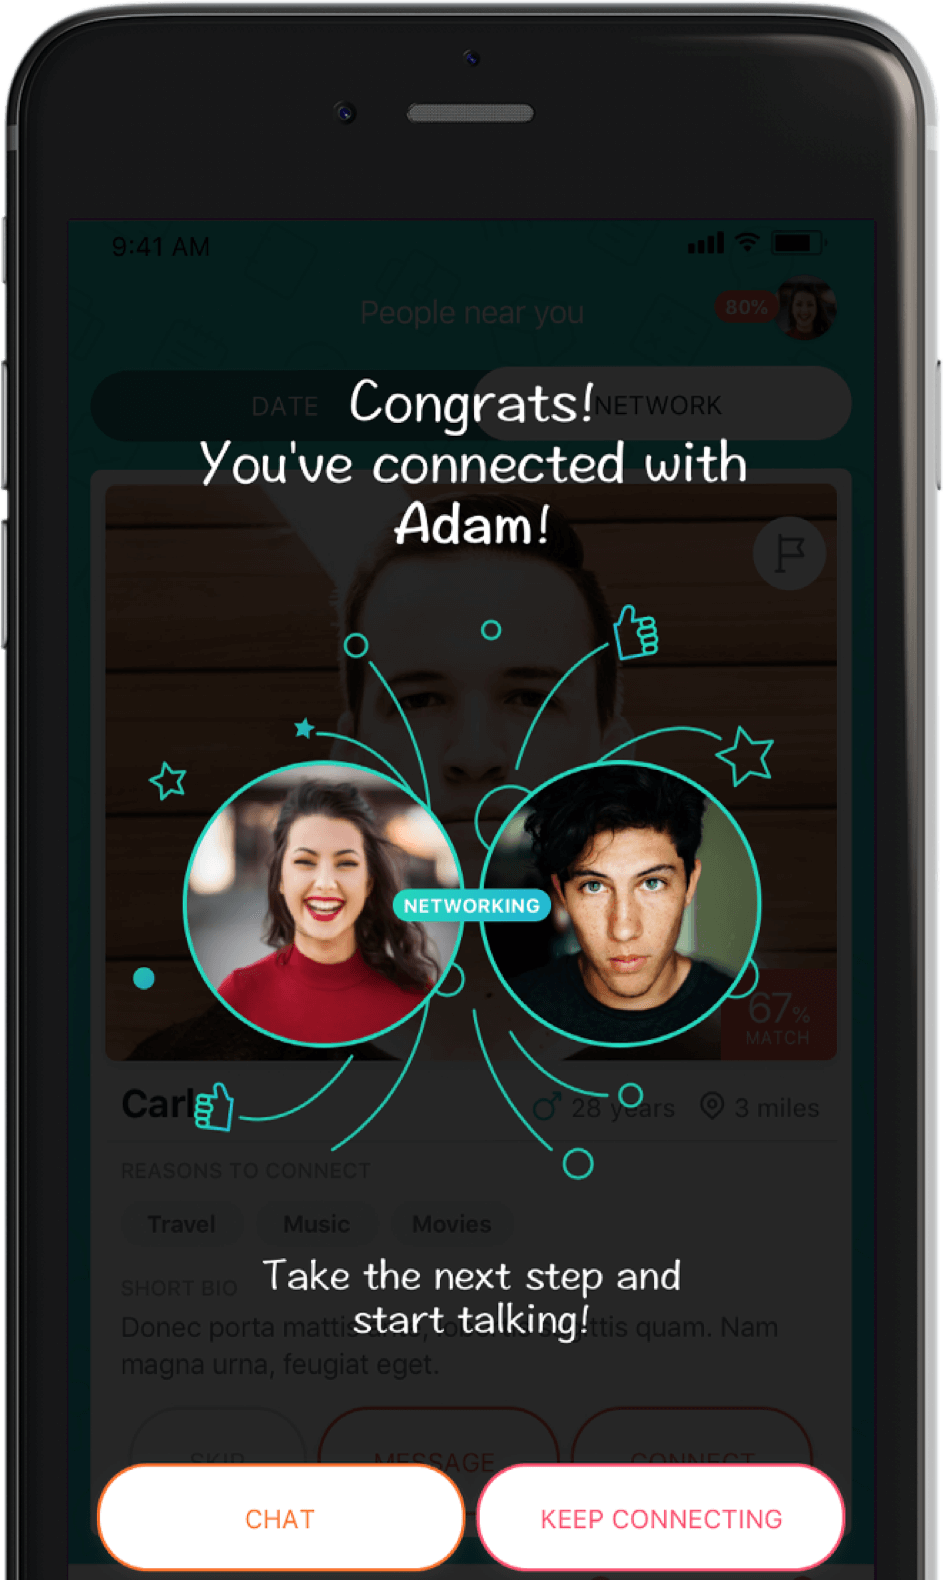 Matching dating profiles on AIVA app shown on a mobile phone